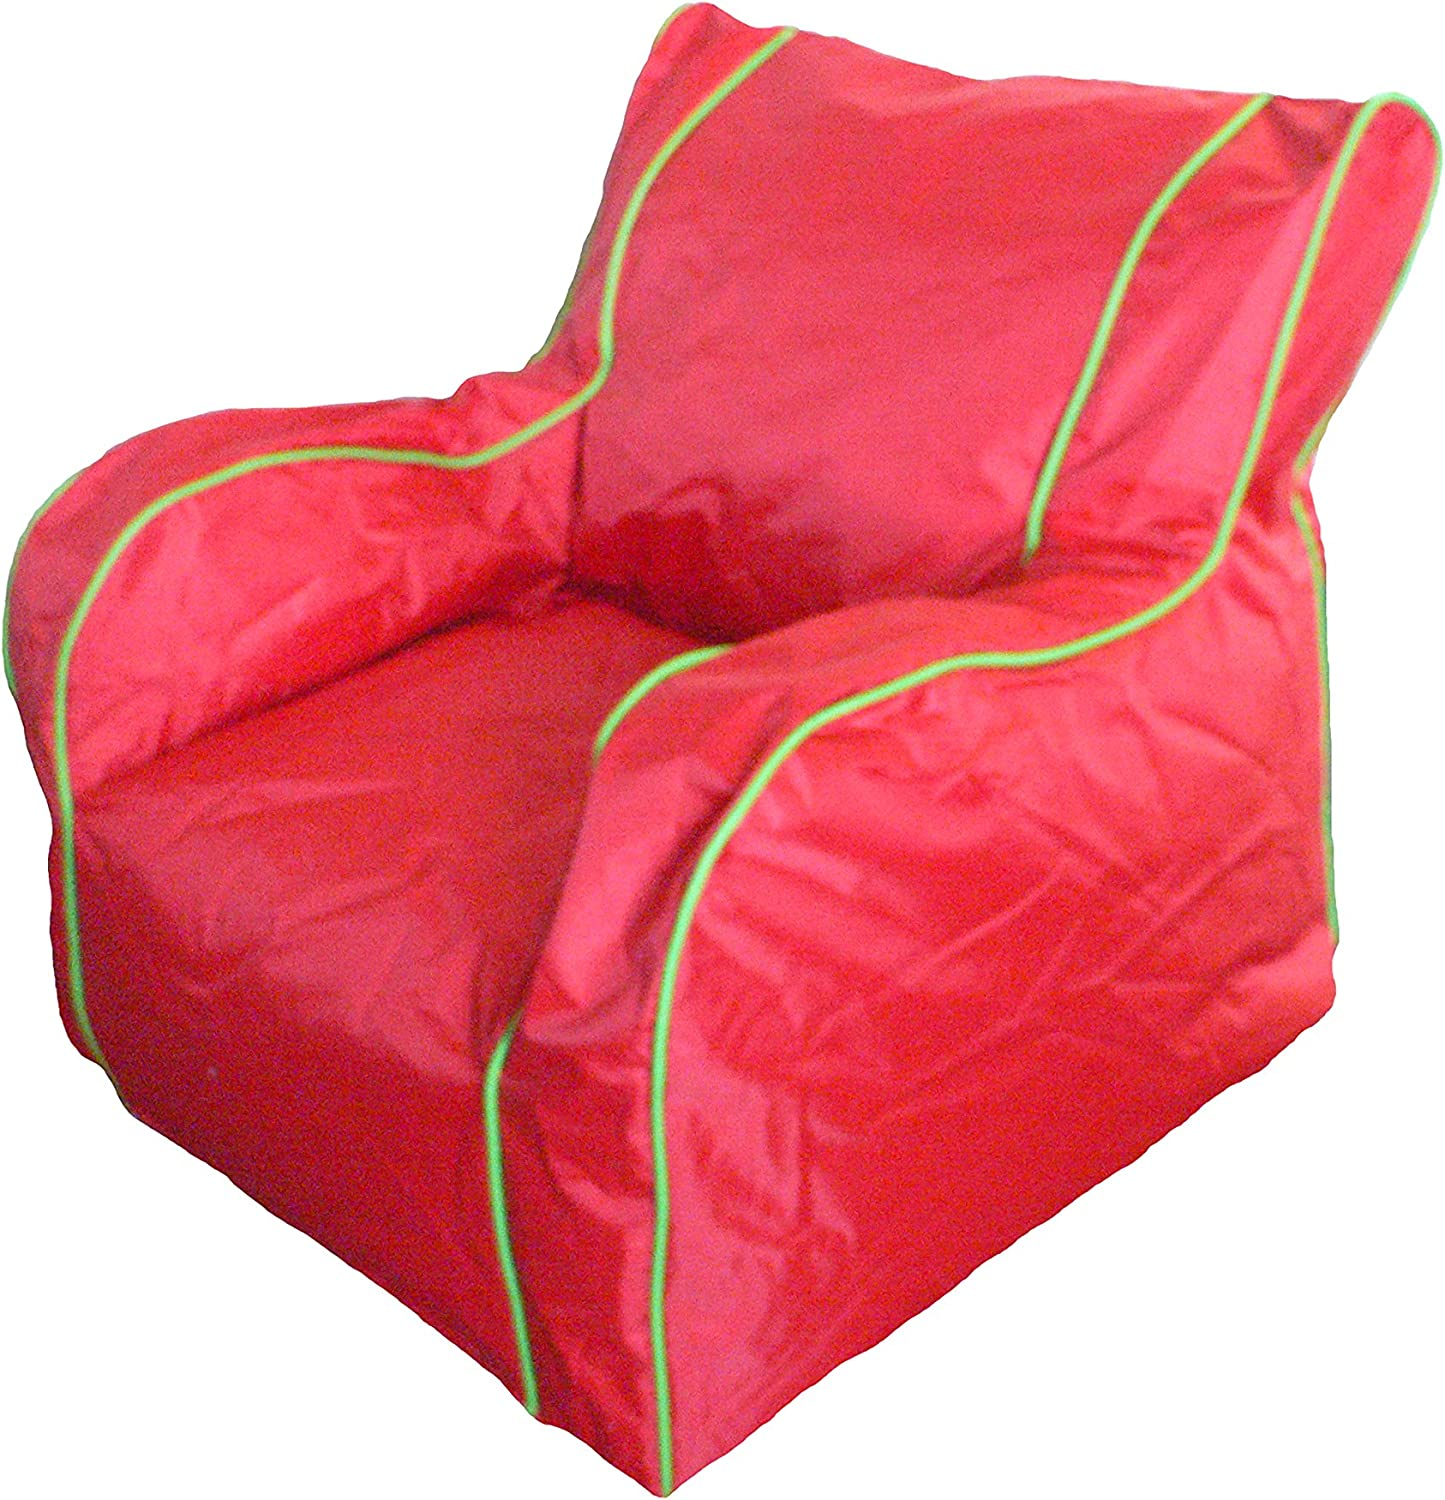 Boscoman - Cody Large Lounger Beanbag Chair - Fiery Red (BOX L)